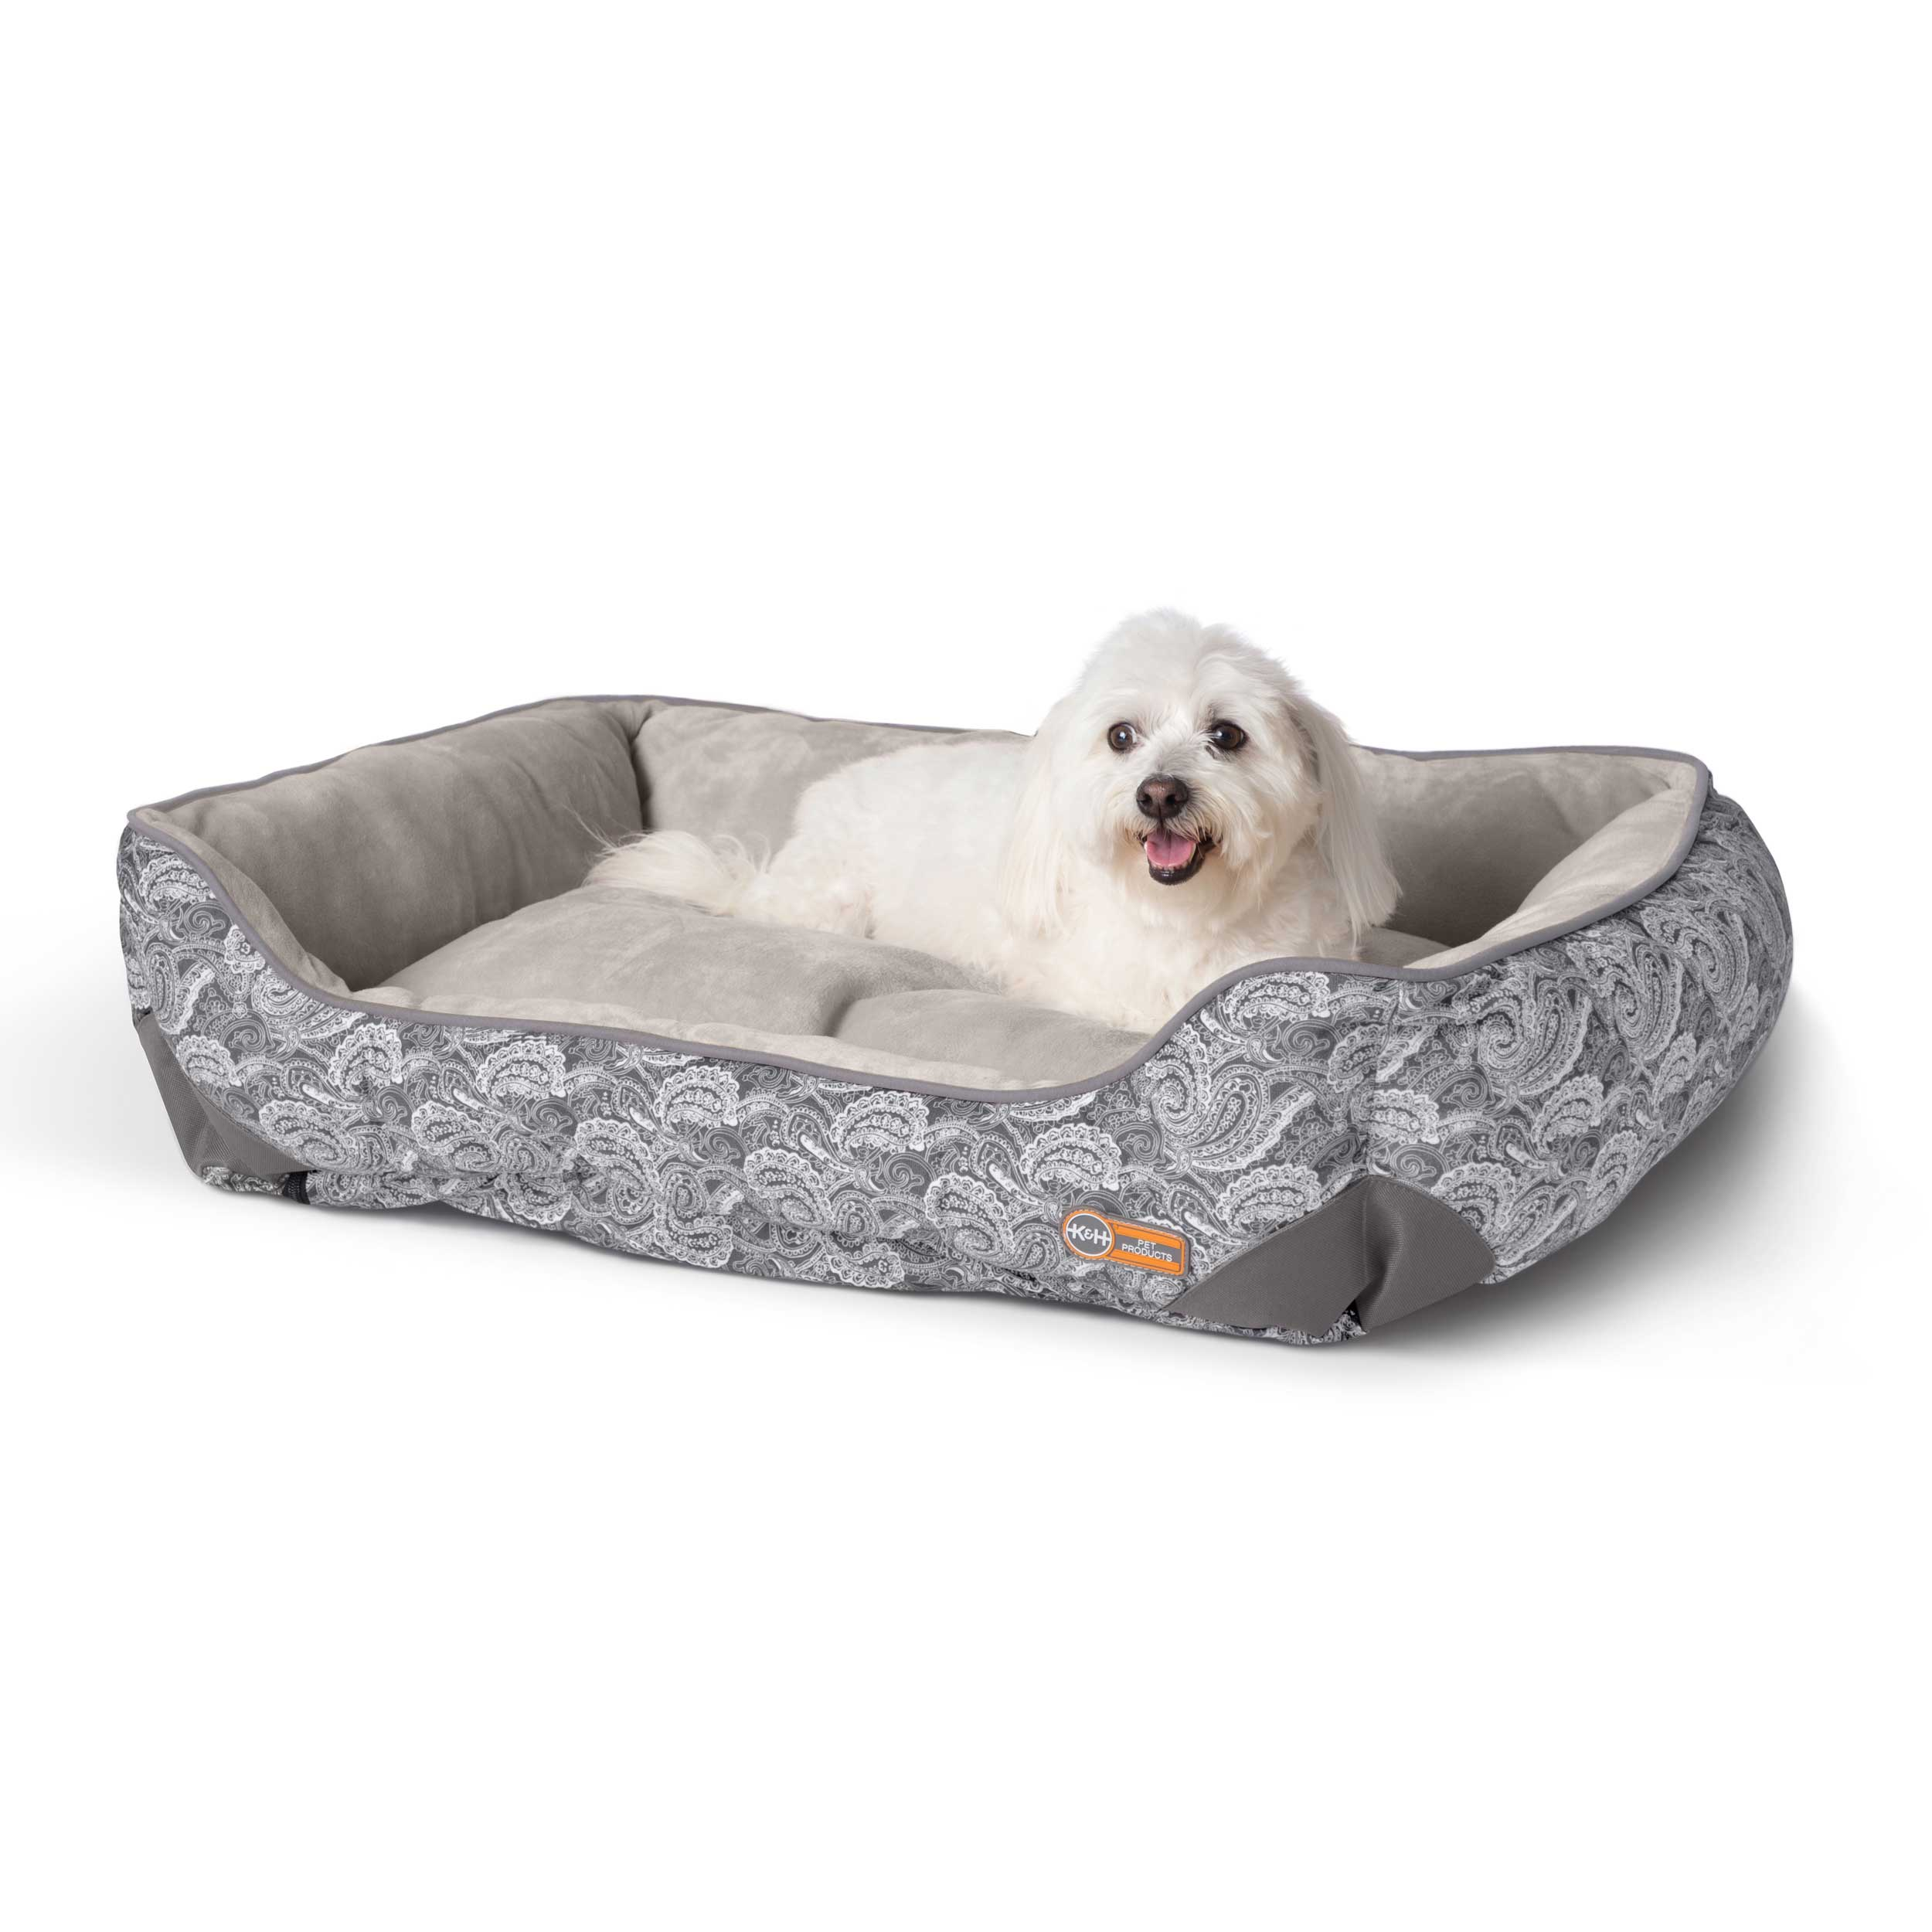 "K&H Pet Products Self-Warming Lounge Sleeper Medim Gray 24"" x 30"" x 9"""